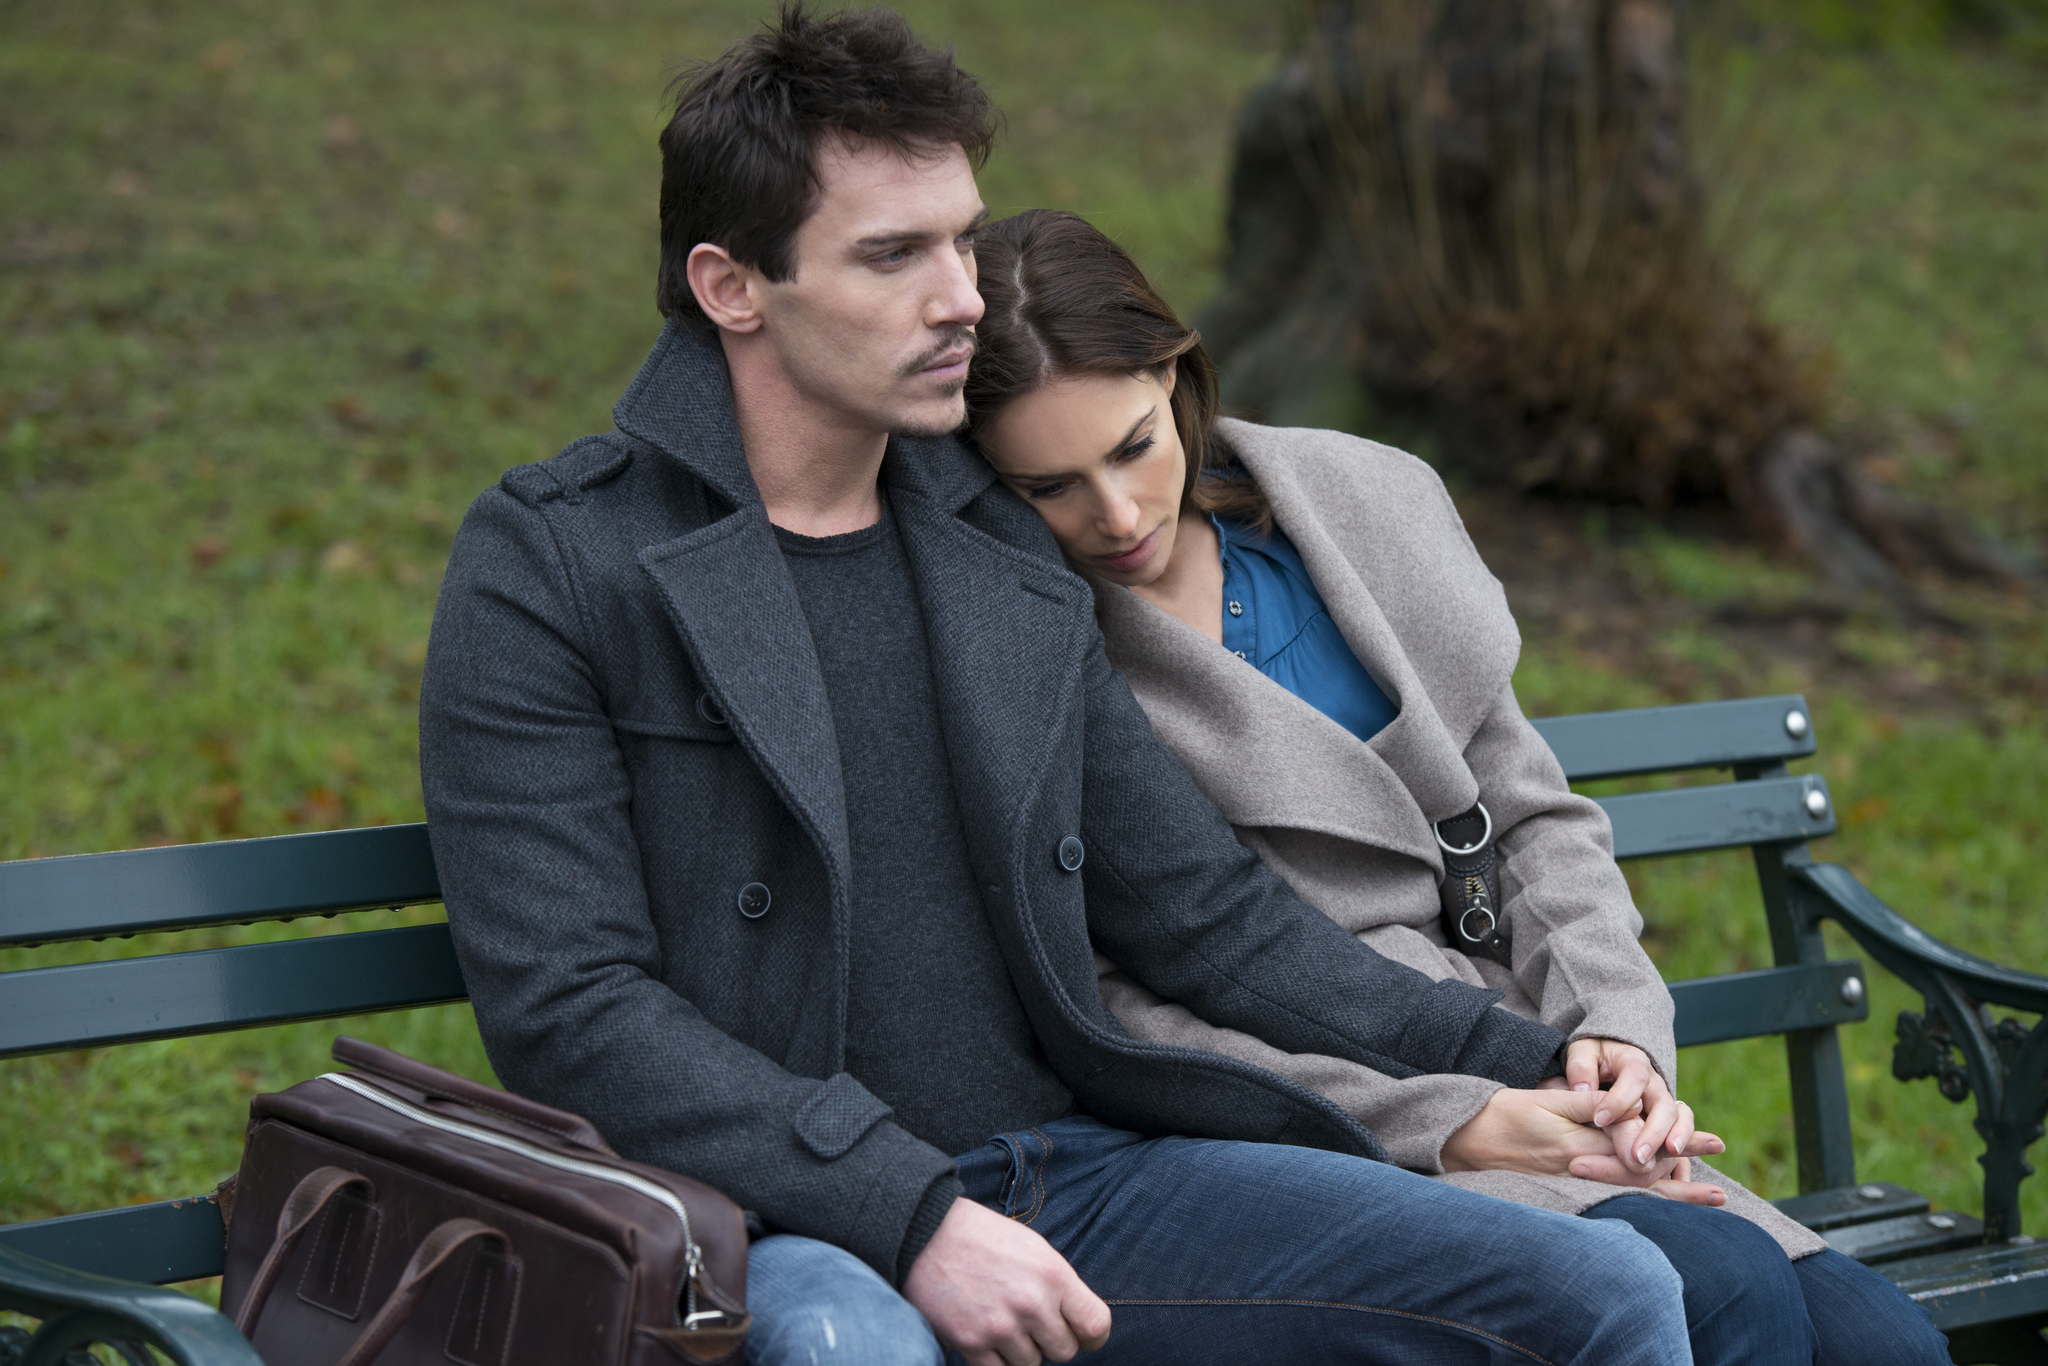 Claire Forlani and Jonathan Rhys Meyers in Another Me (2013)